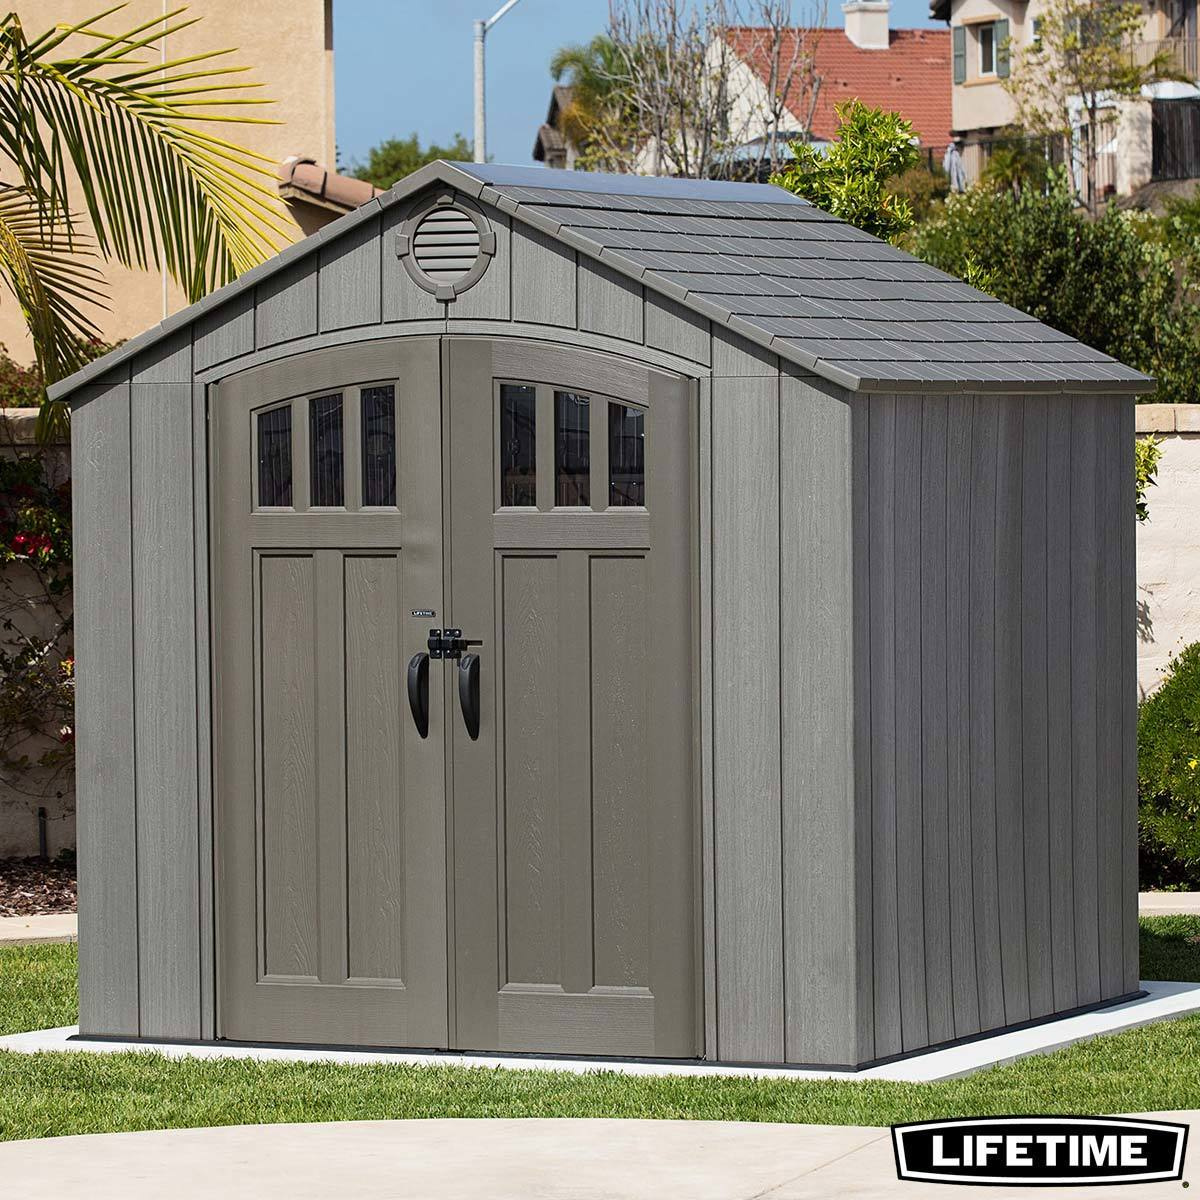 Lifetime 8ft X 7ft 5 2 4 X 2 3m Simulated Wood Look Storage Shed With 1 Ridge Skylight And 3 Window Panes Per Door Costco Uk